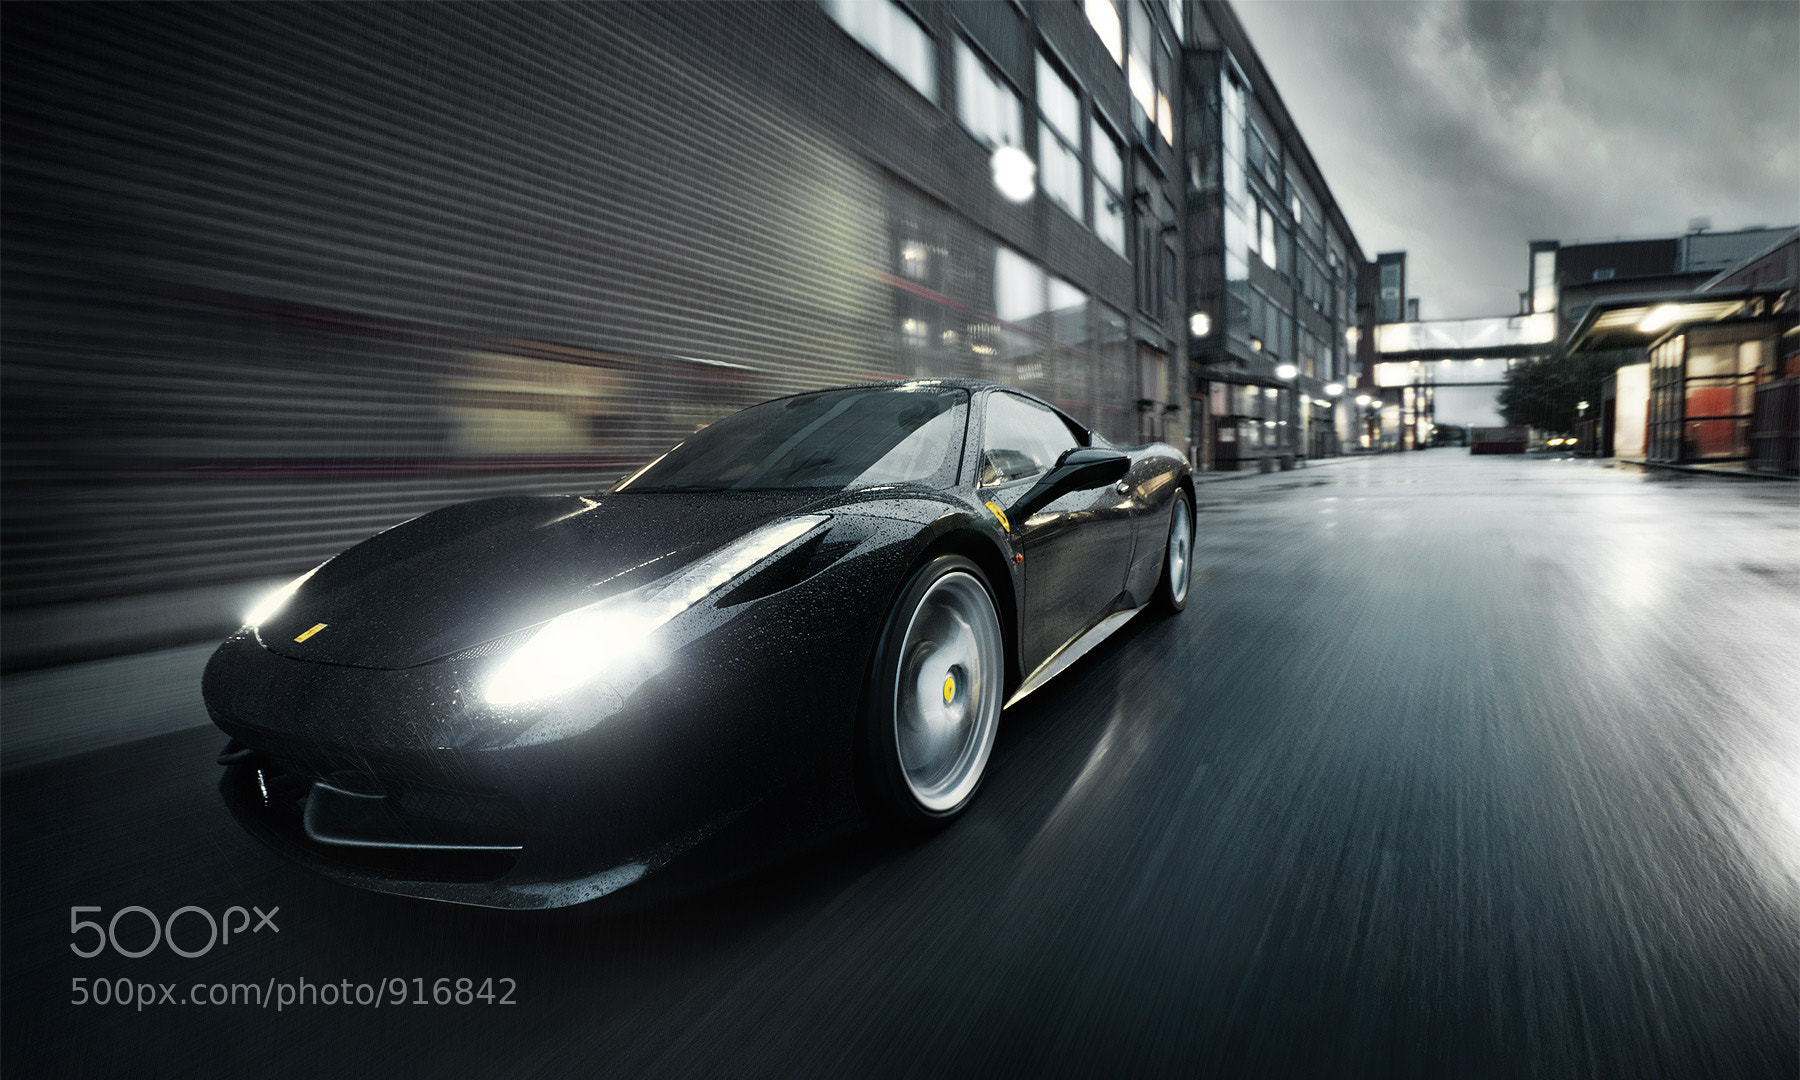 Photograph Ferrari 458 italia - The Dark Knight 2 by Dejan Sokolovski on 500px